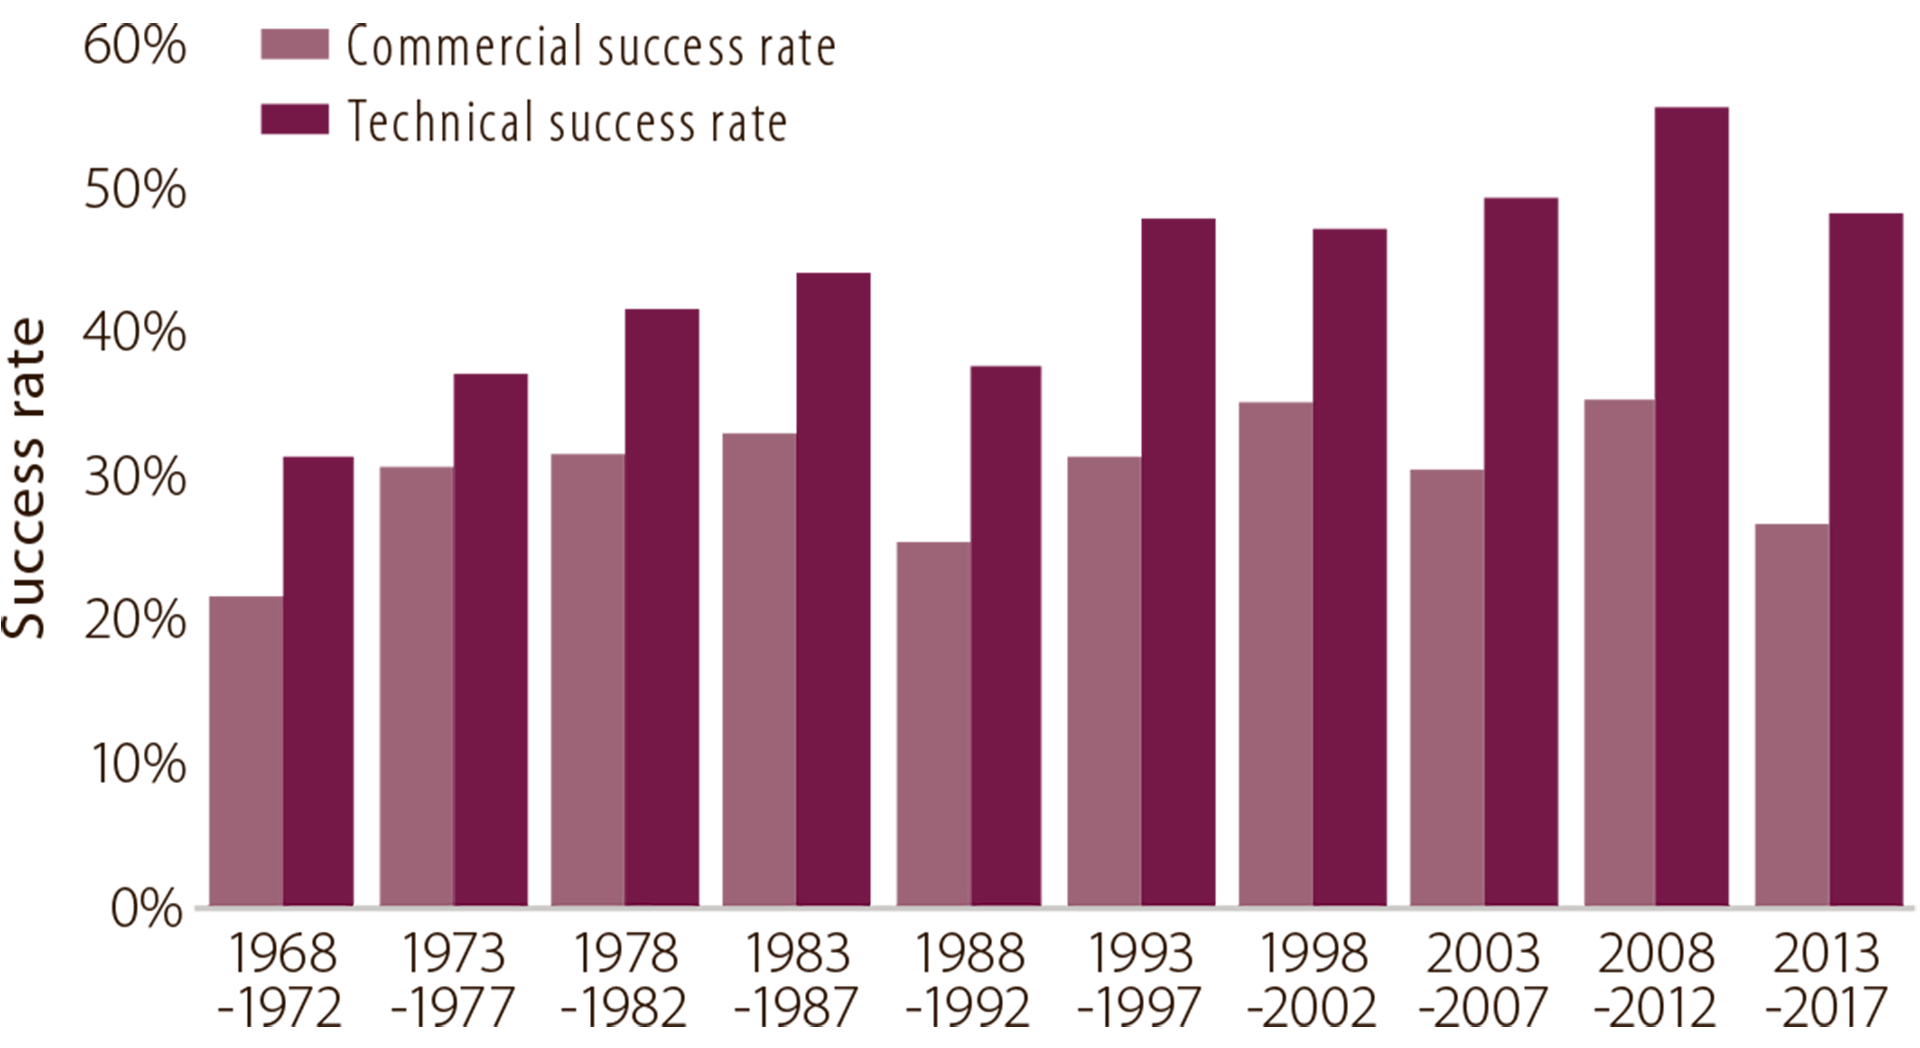 Figure 6.2 Development of technical and commercial success rates (averages at five-year intervals).